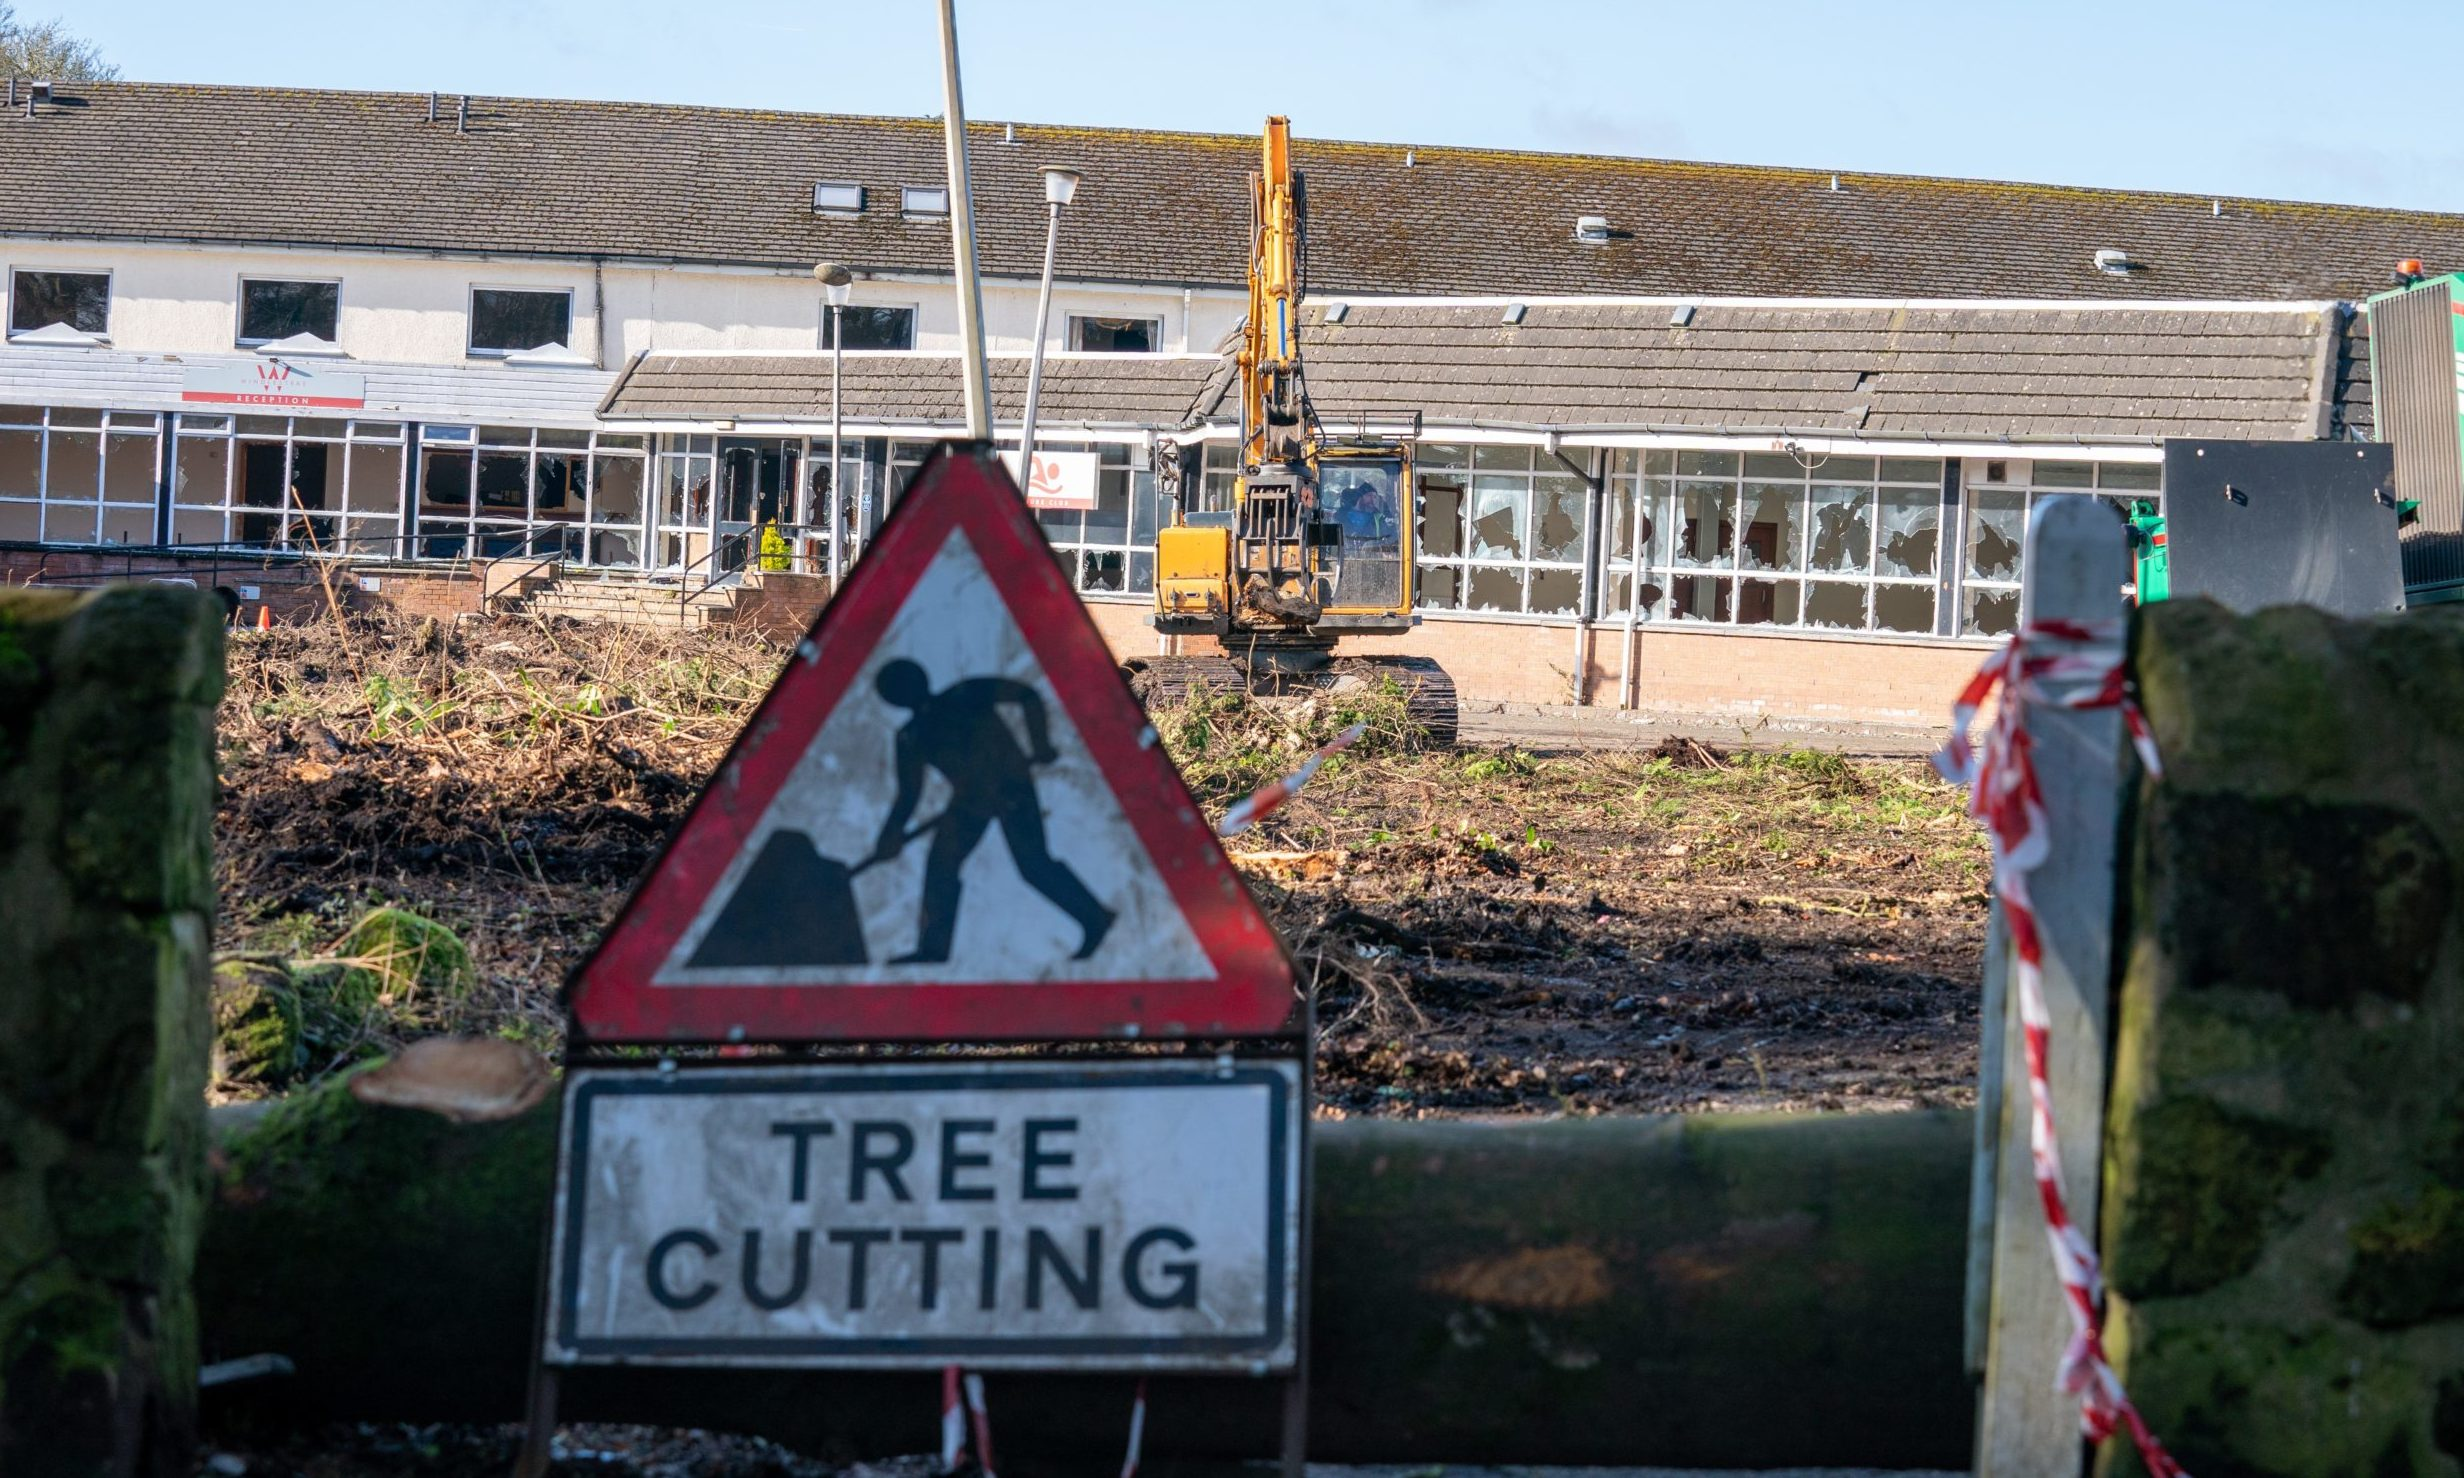 Trees ripped from ground as demolition begins on the Windlestrae hotel